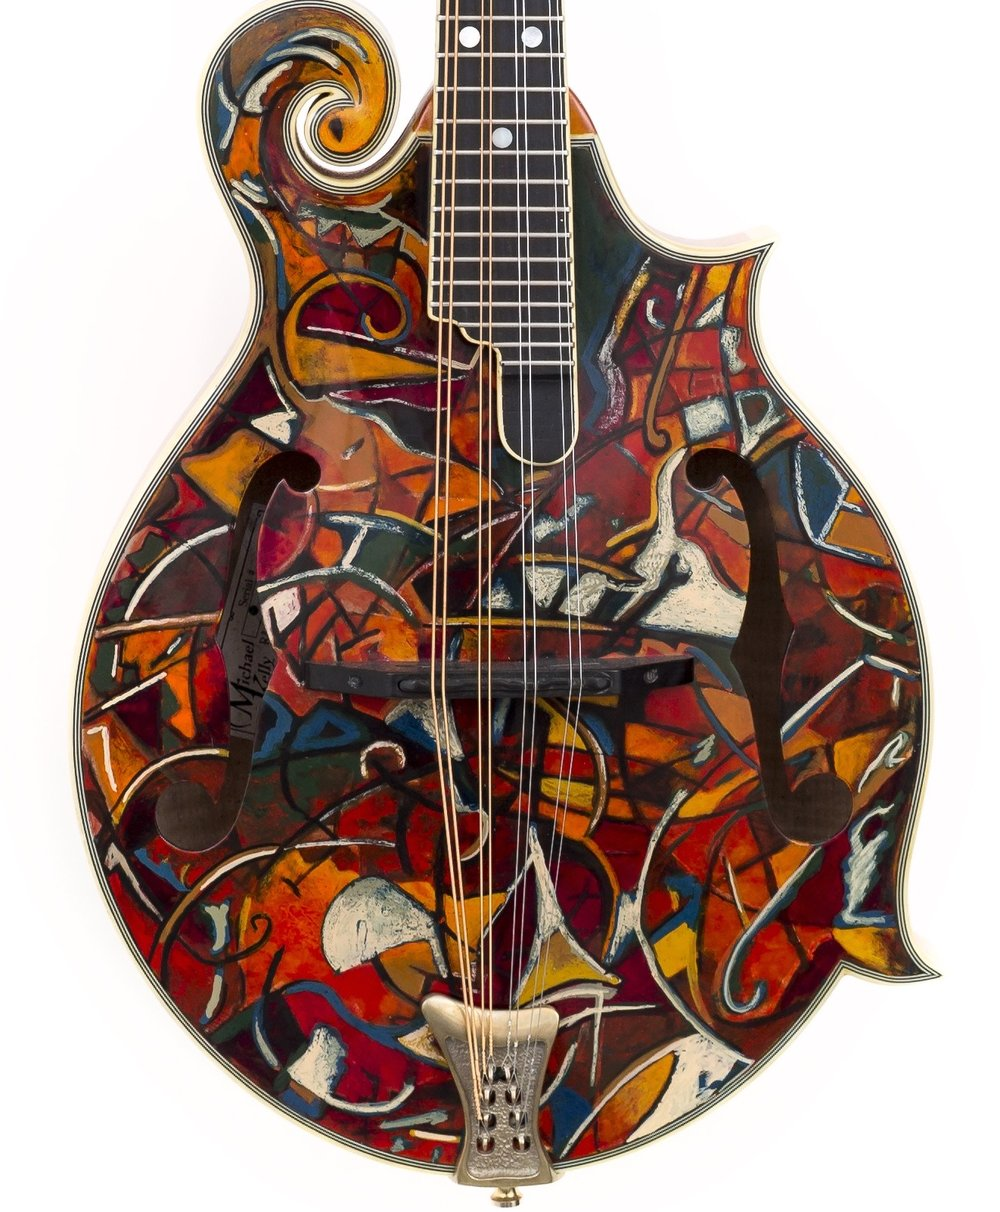 Abstraction  motif. Michael Kelly mandolin. Artists pigment in shellac on sitka spruce top, maple back and sides. $2200.00